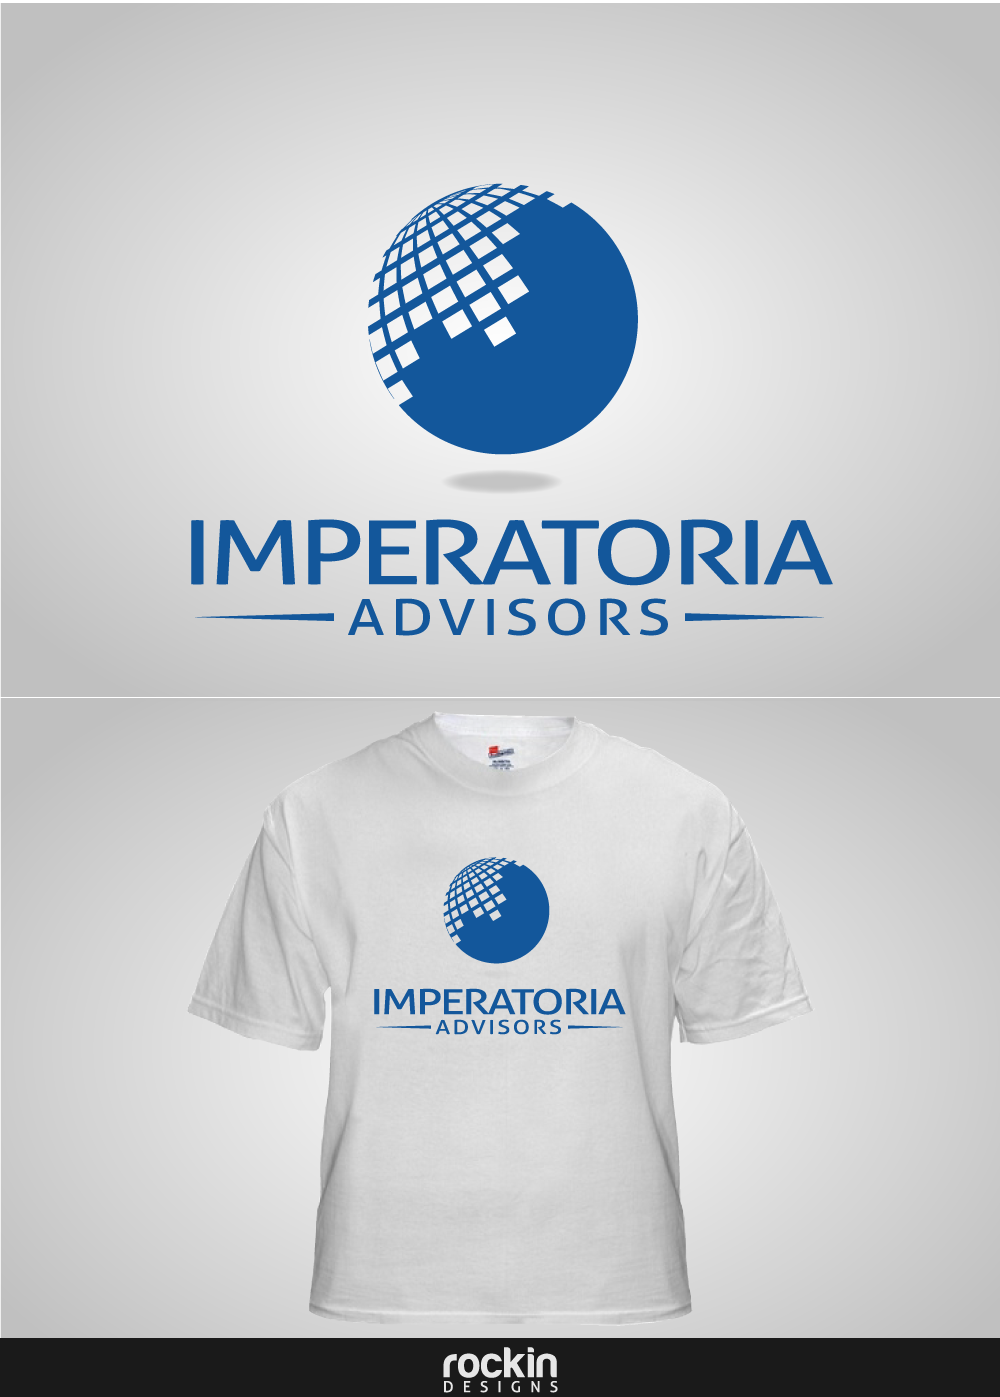 Logo Design by rockin - Entry No. 92 in the Logo Design Contest Unique Logo Design Wanted for Imperatoria Advisors.